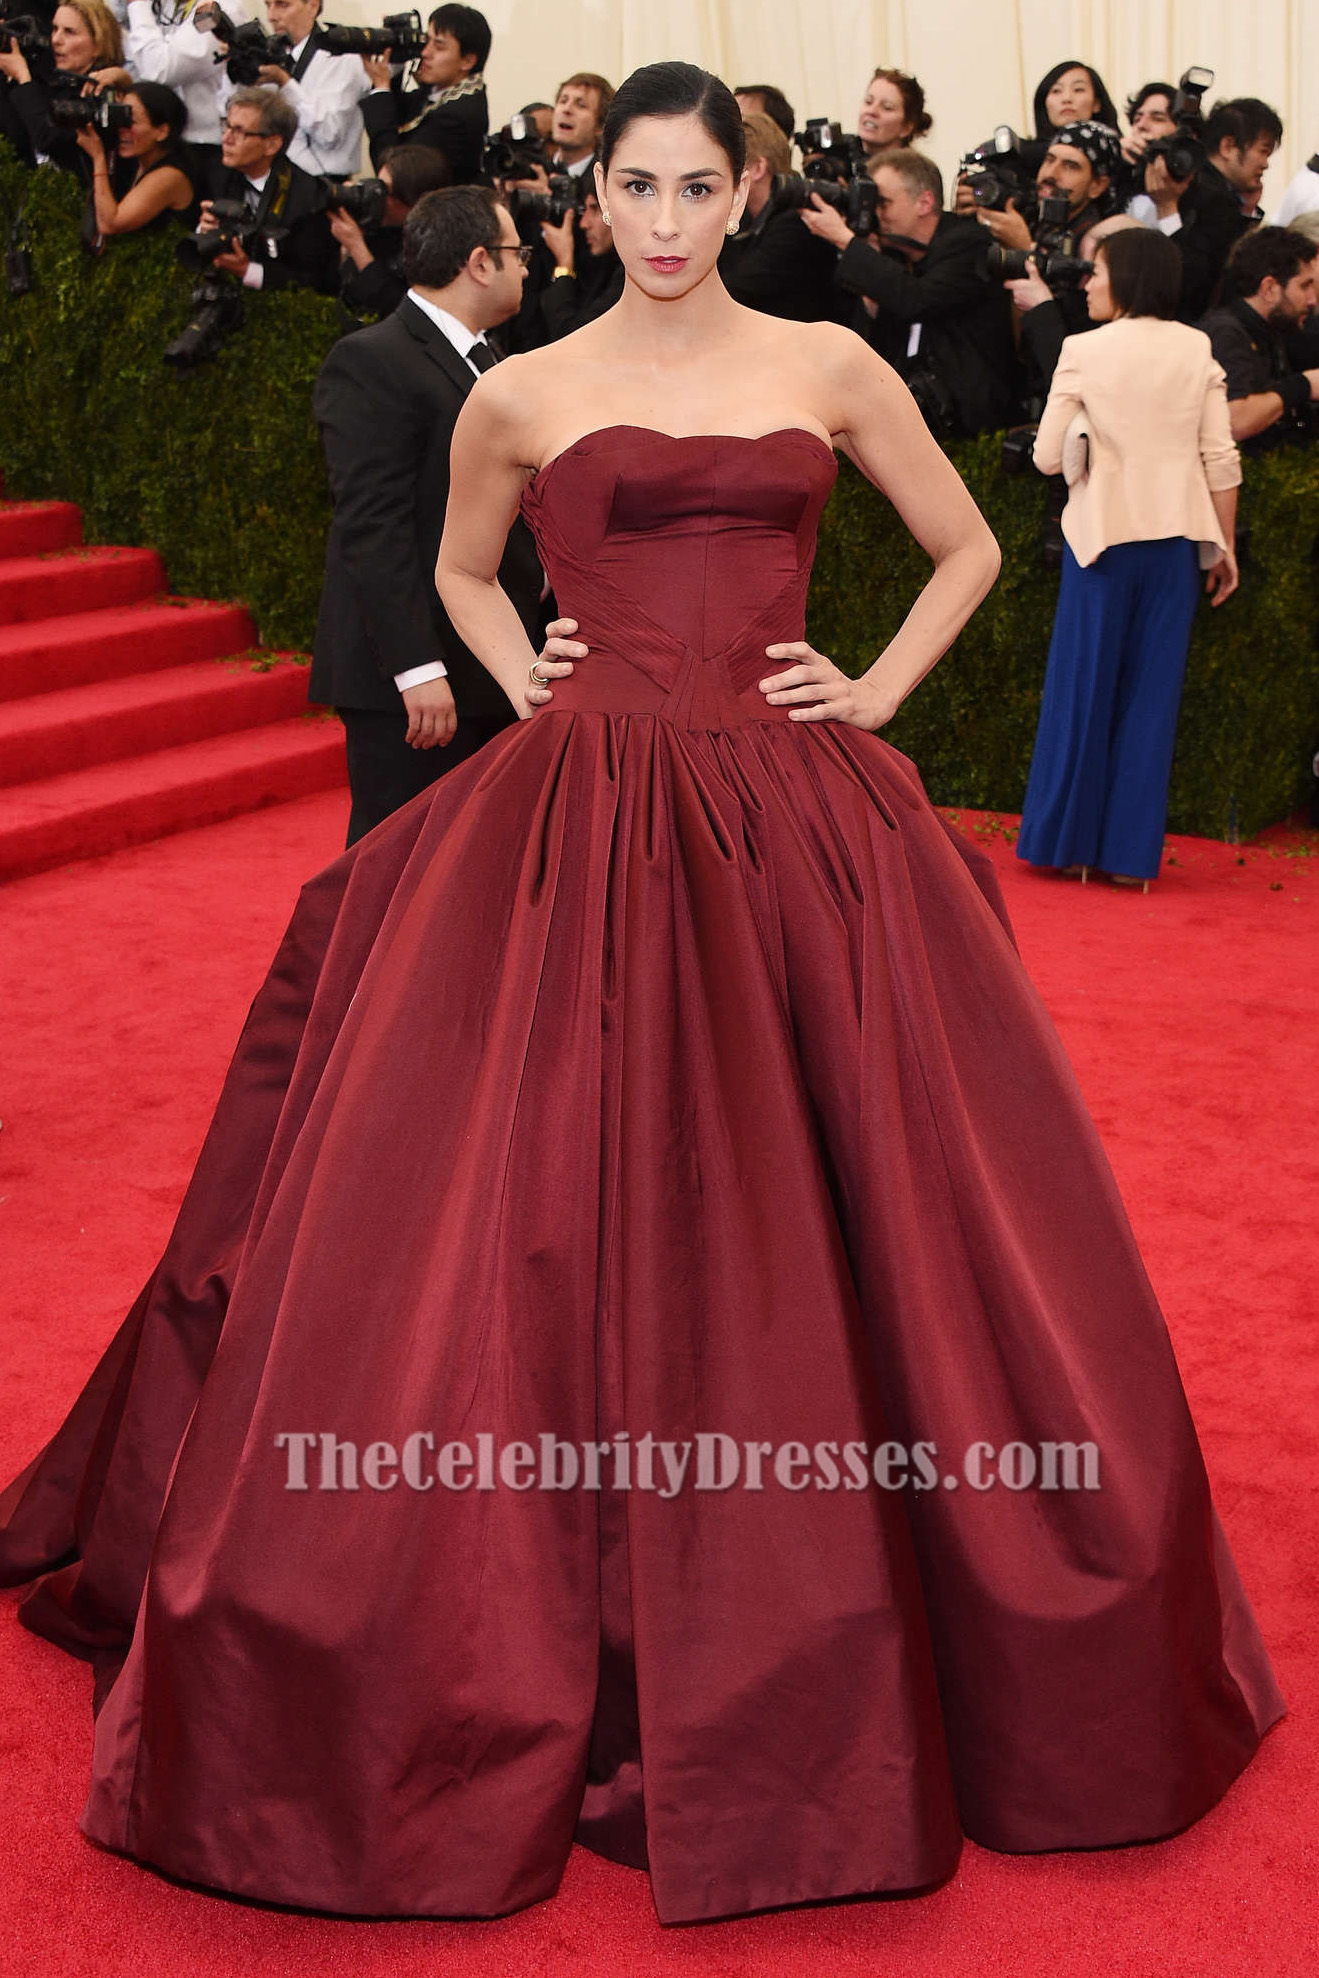 Sarah silverman burgundy ball gown quinceanera dress 2014 met gala red carpet thecelebritydresses - Dresses from the red carpet ...